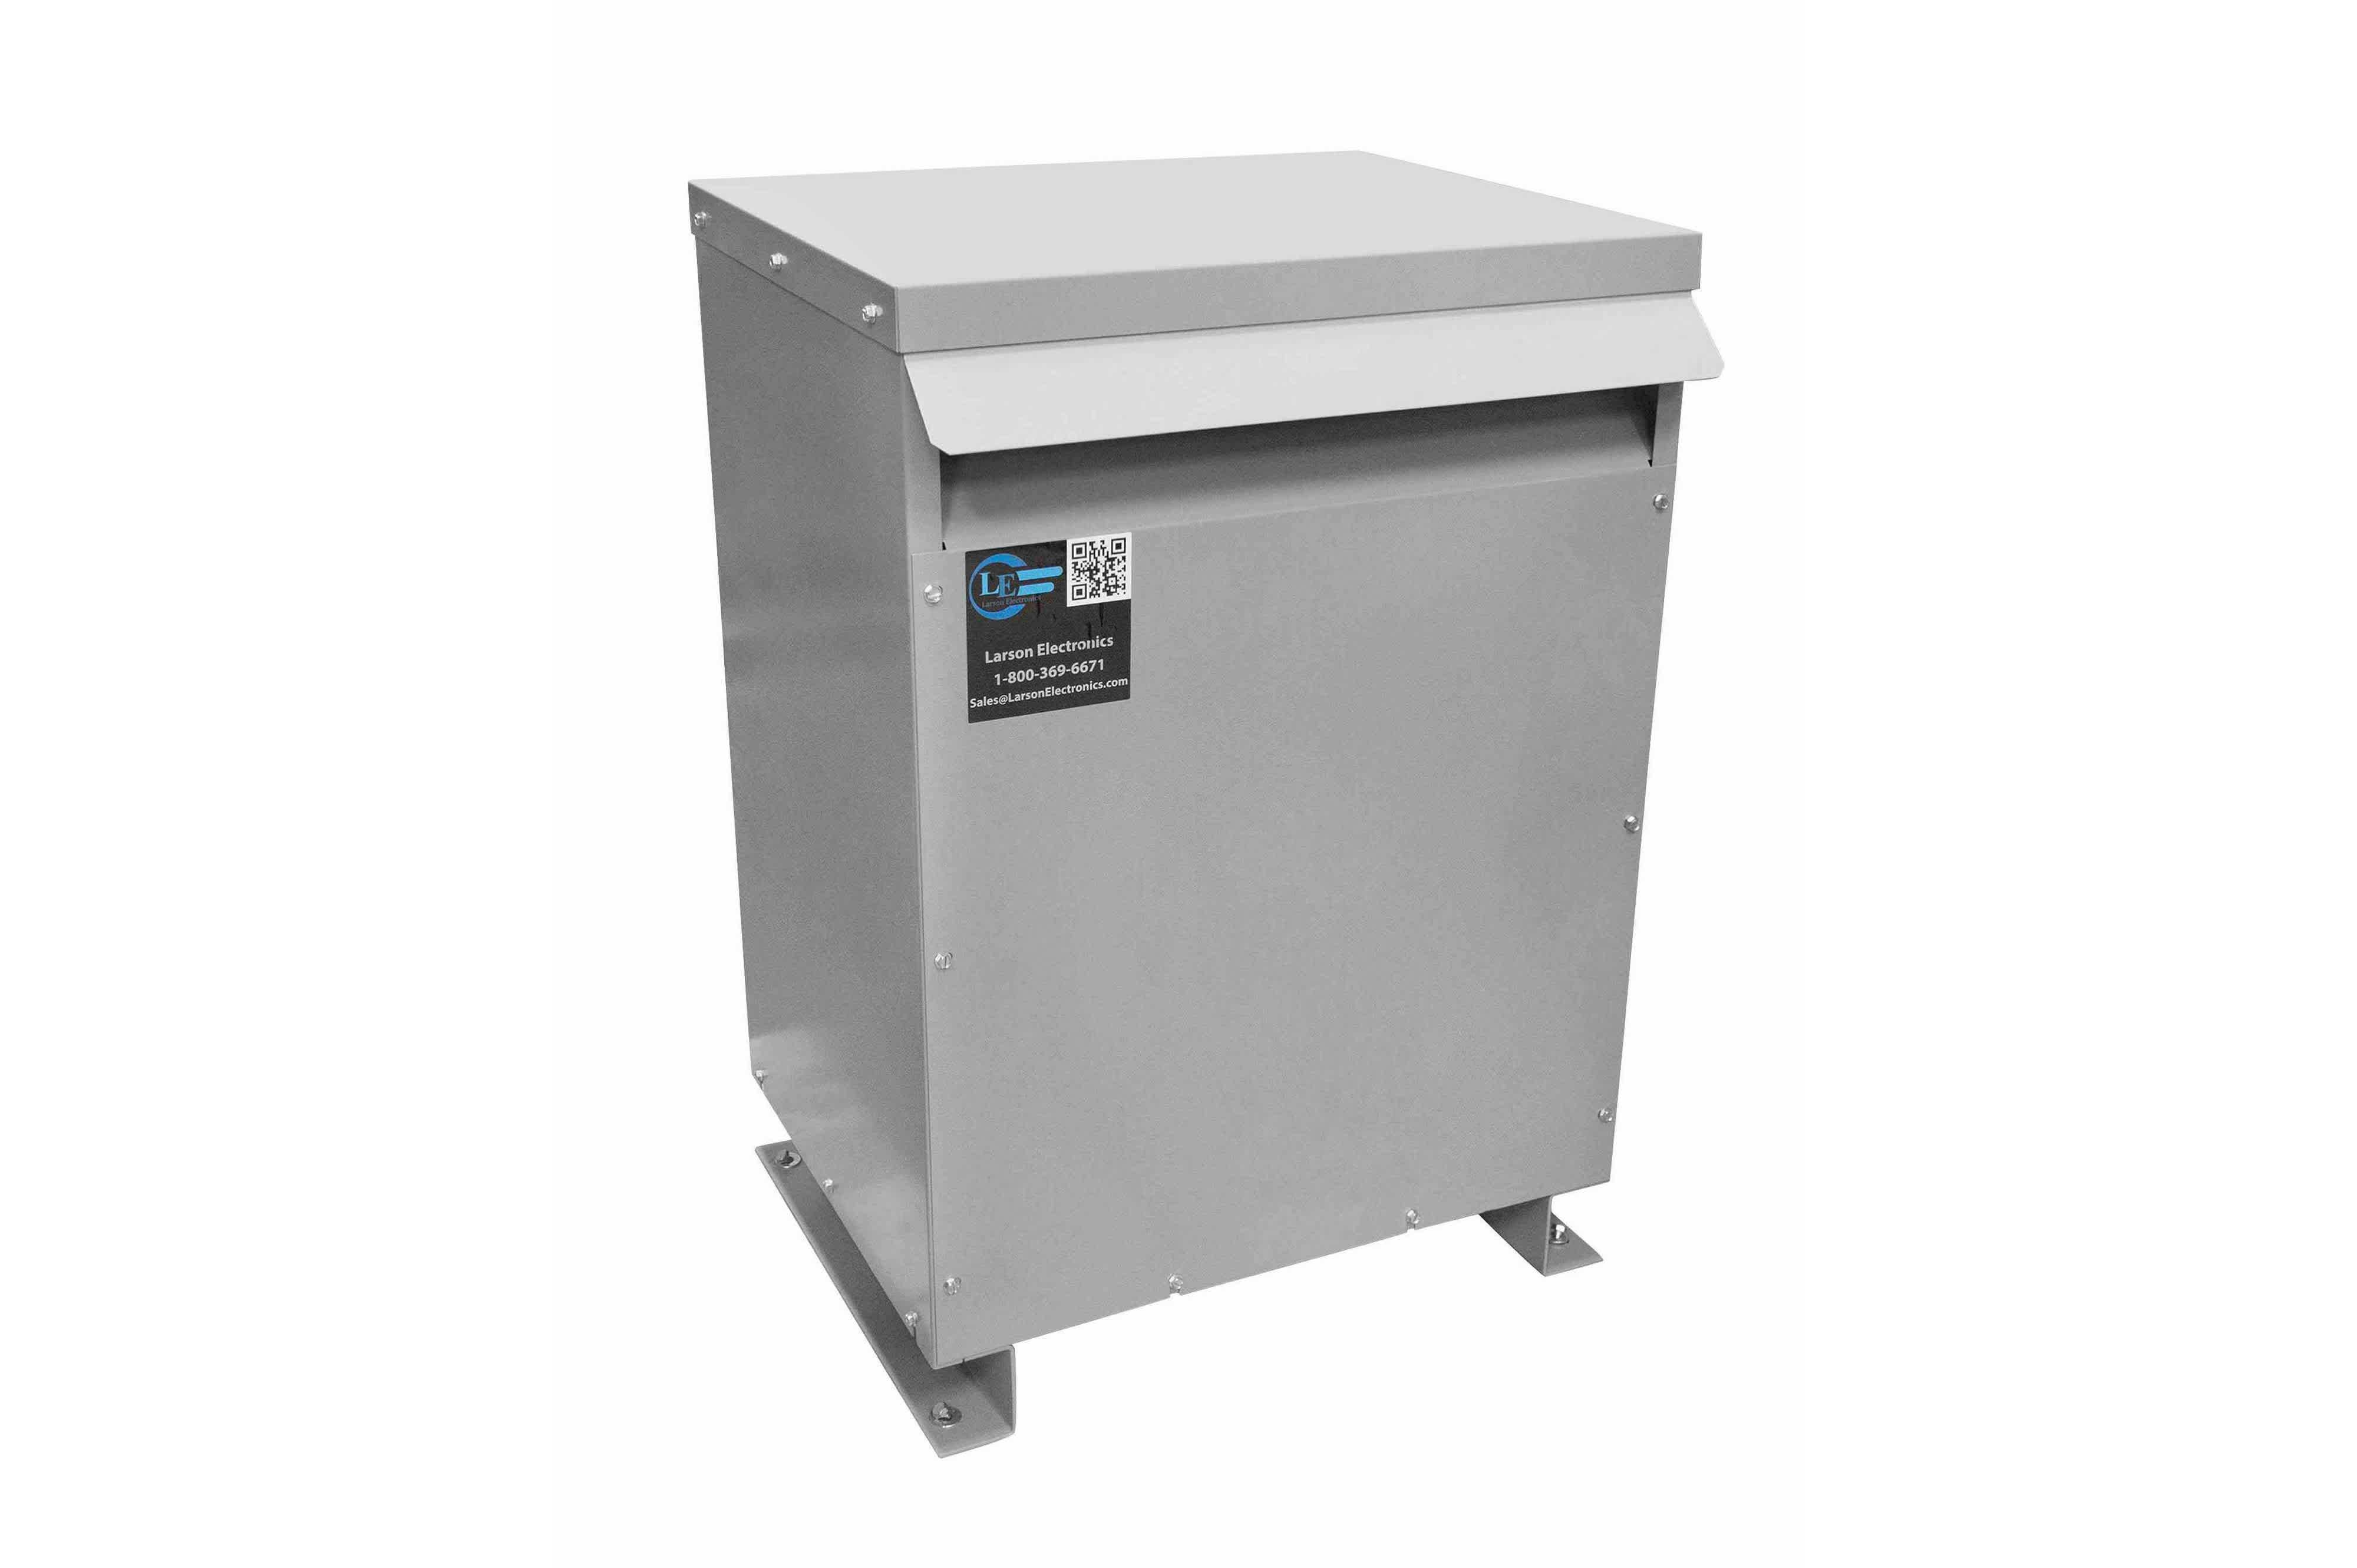 25 kVA 3PH DOE Transformer, 220V Delta Primary, 208Y/120 Wye-N Secondary, N3R, Ventilated, 60 Hz